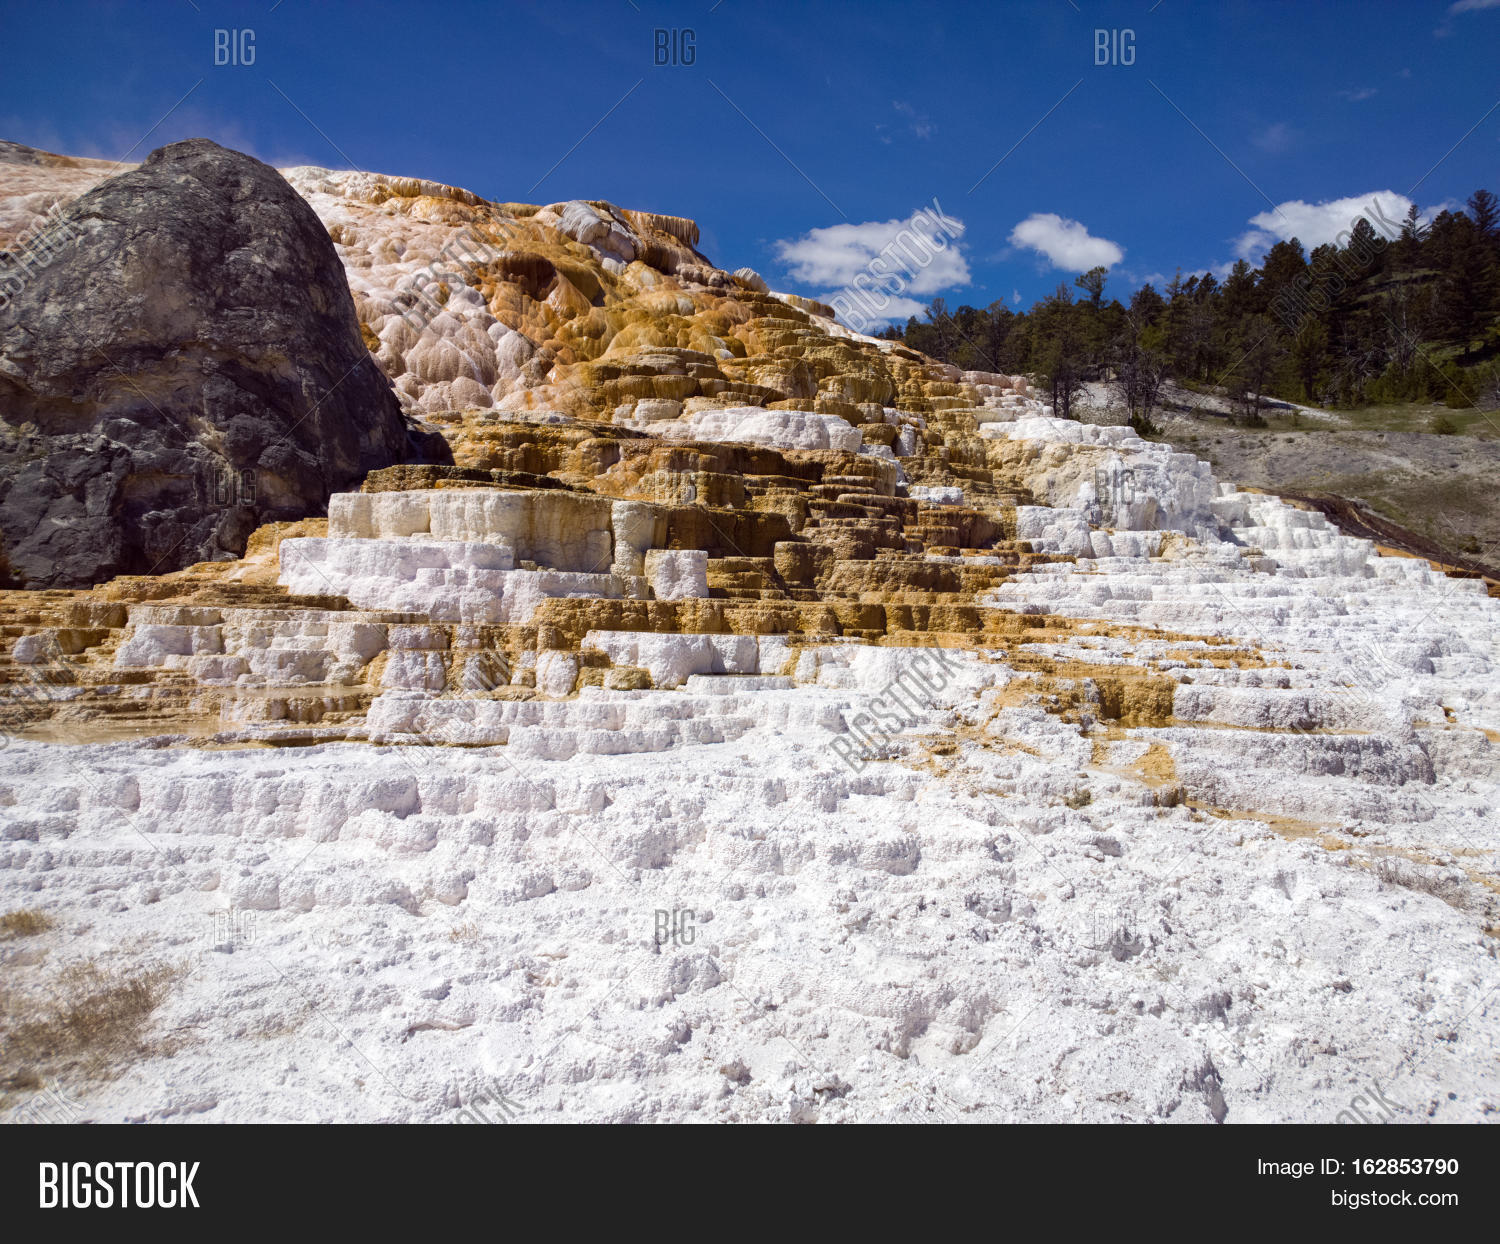 Red and white travertine terrace calcium carbonate deposits blue sky at Mammoth Hot Springs Yellowstone National Park